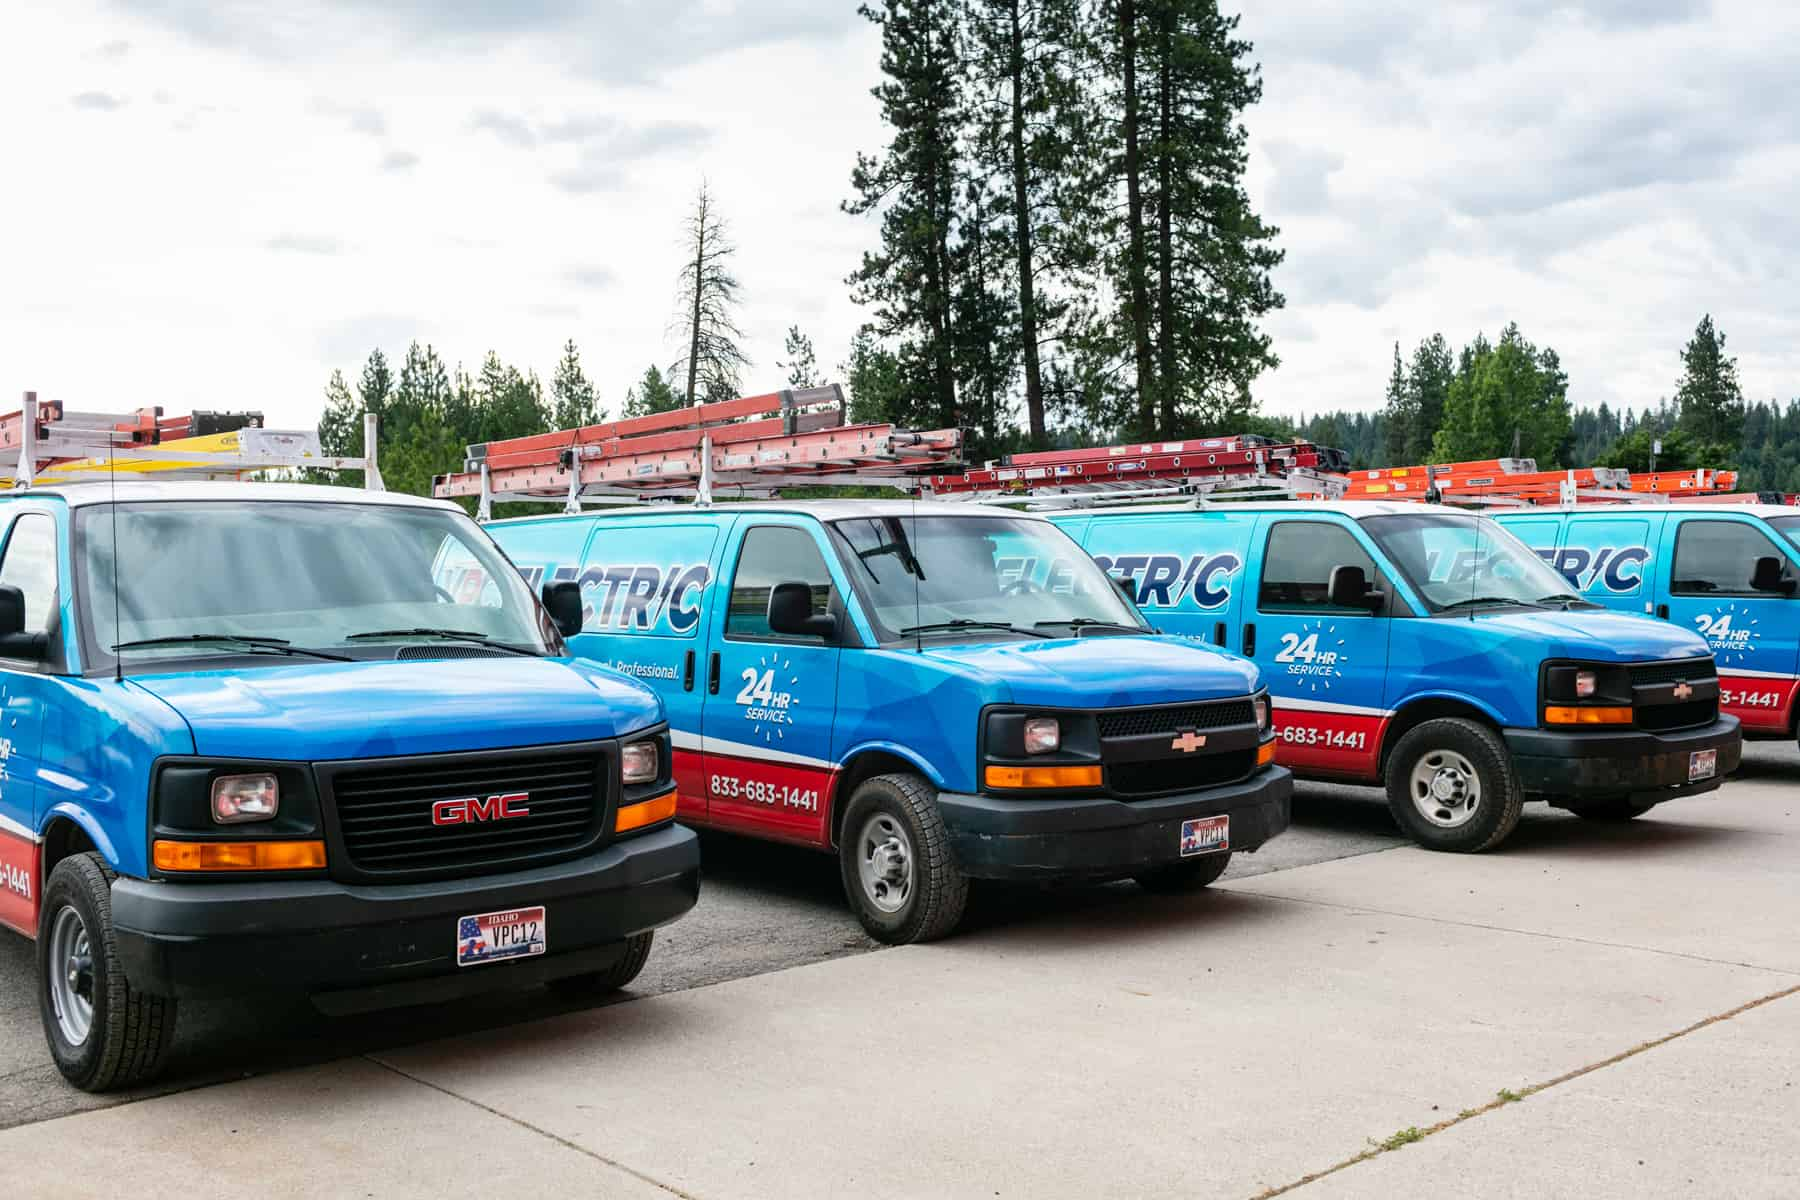 Spokane electrician services_fleet of VPC Electric service vans